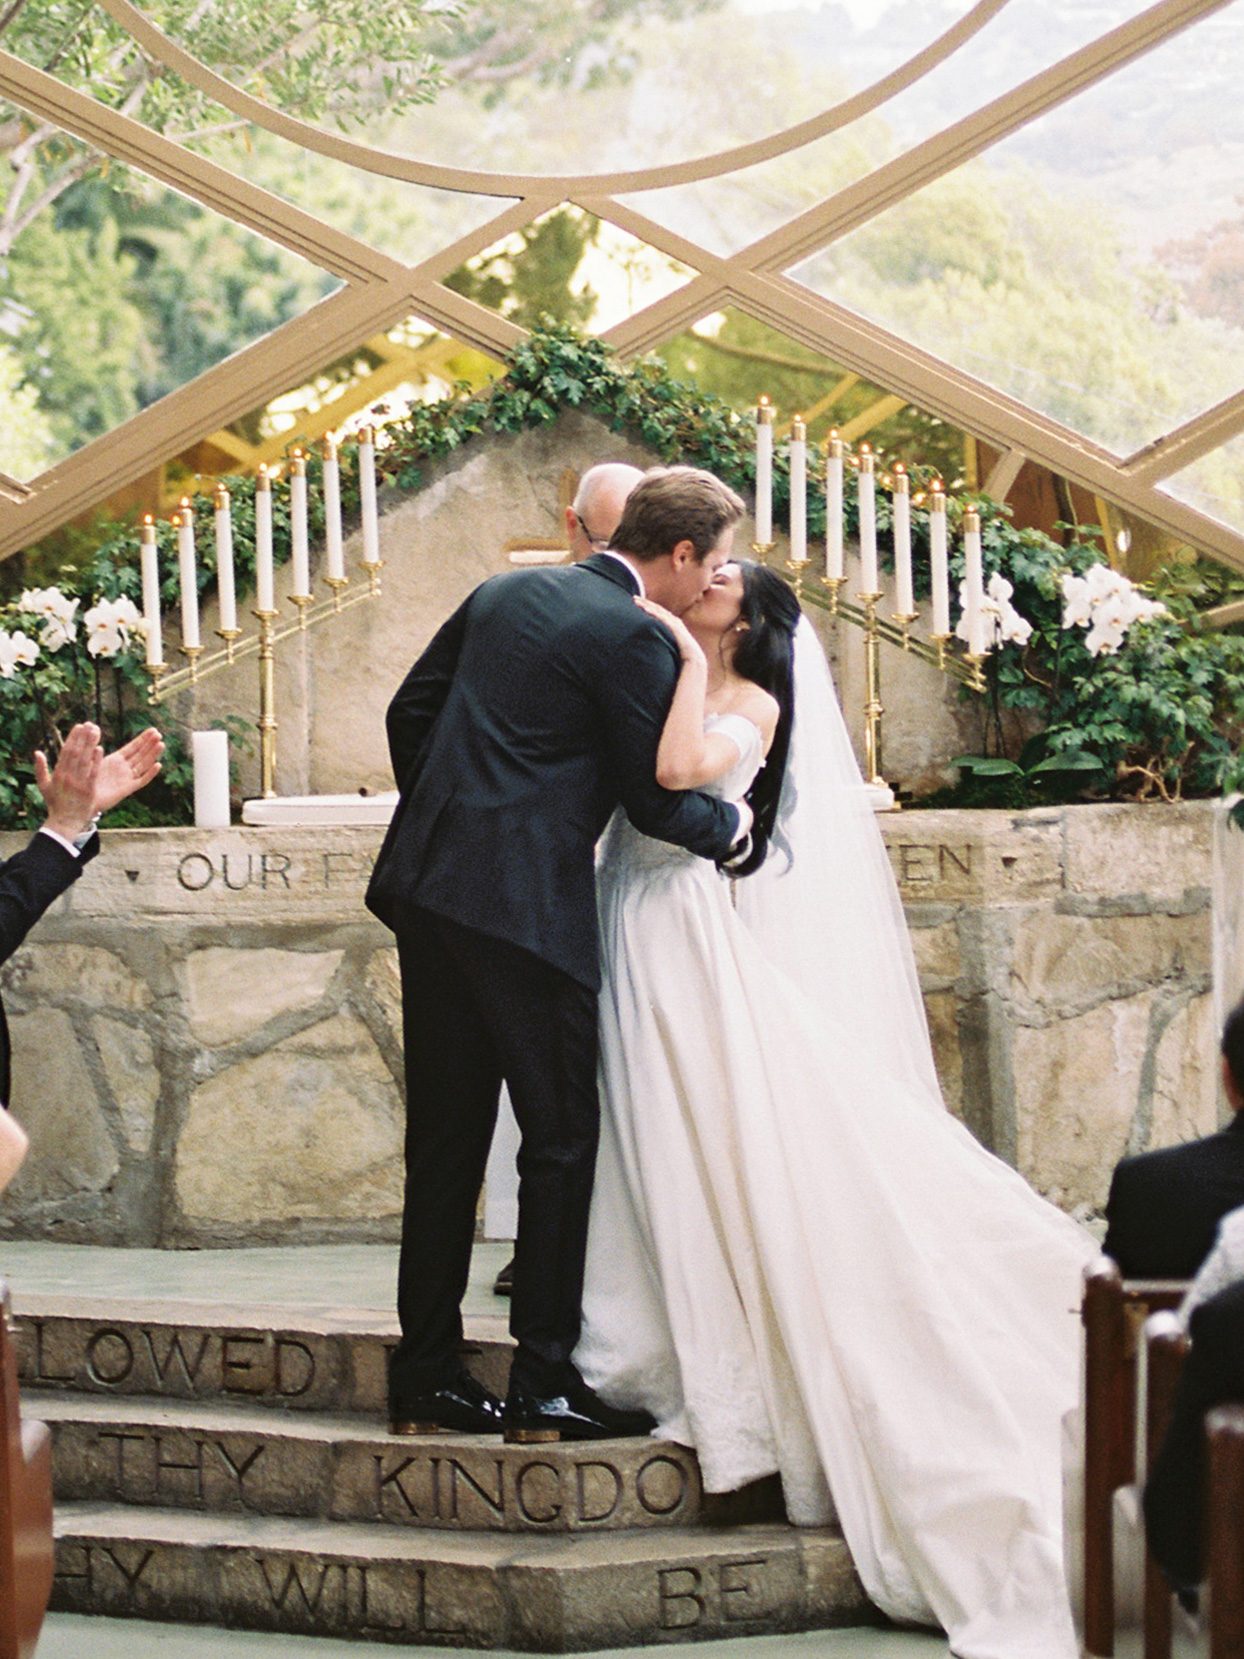 wedding couple first kiss on church steps at ceremony